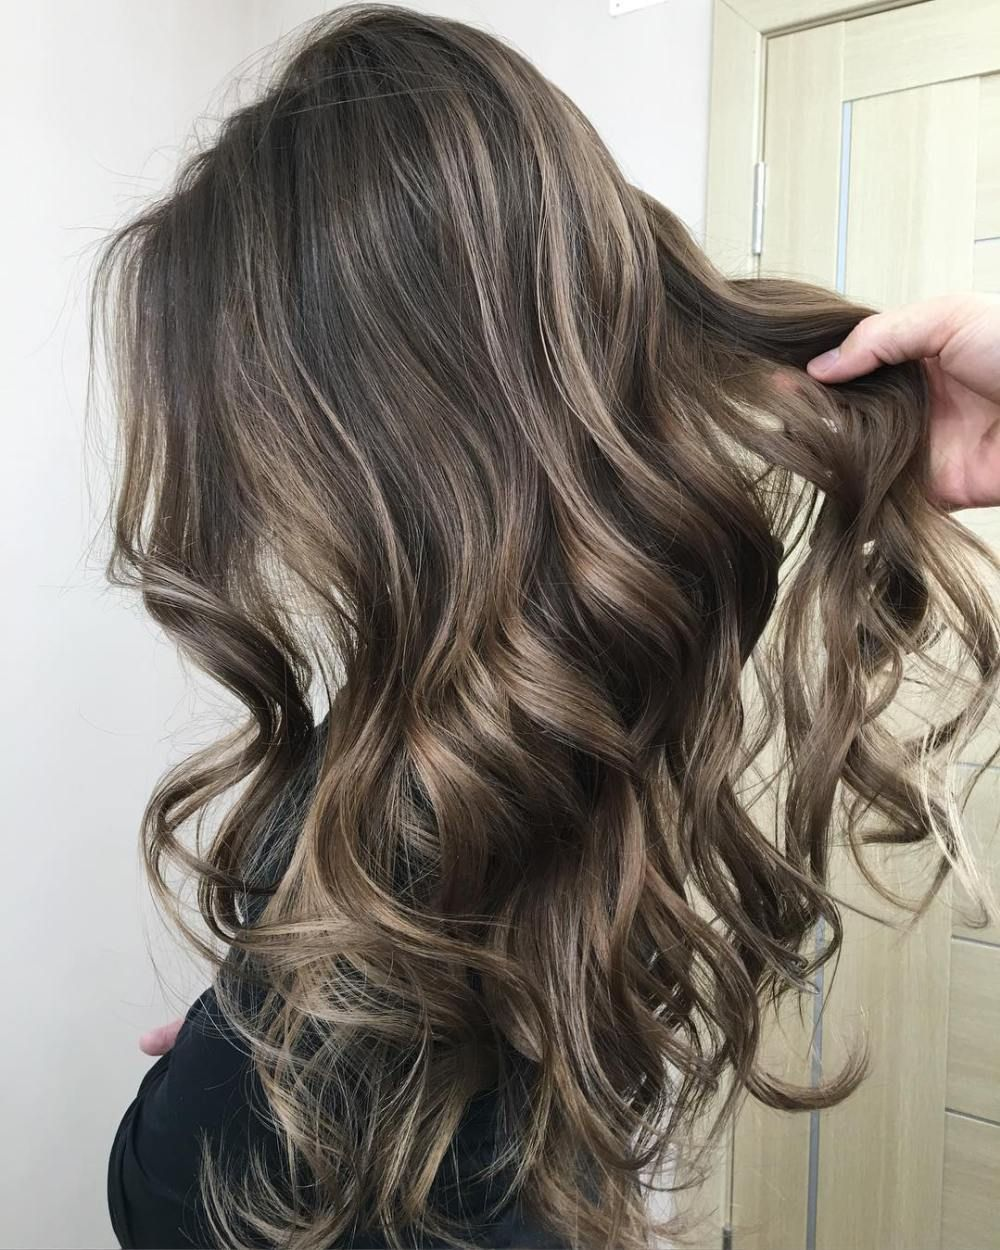 40 Of The Best Bronde Hair Options Beauty And Hair Pinterest